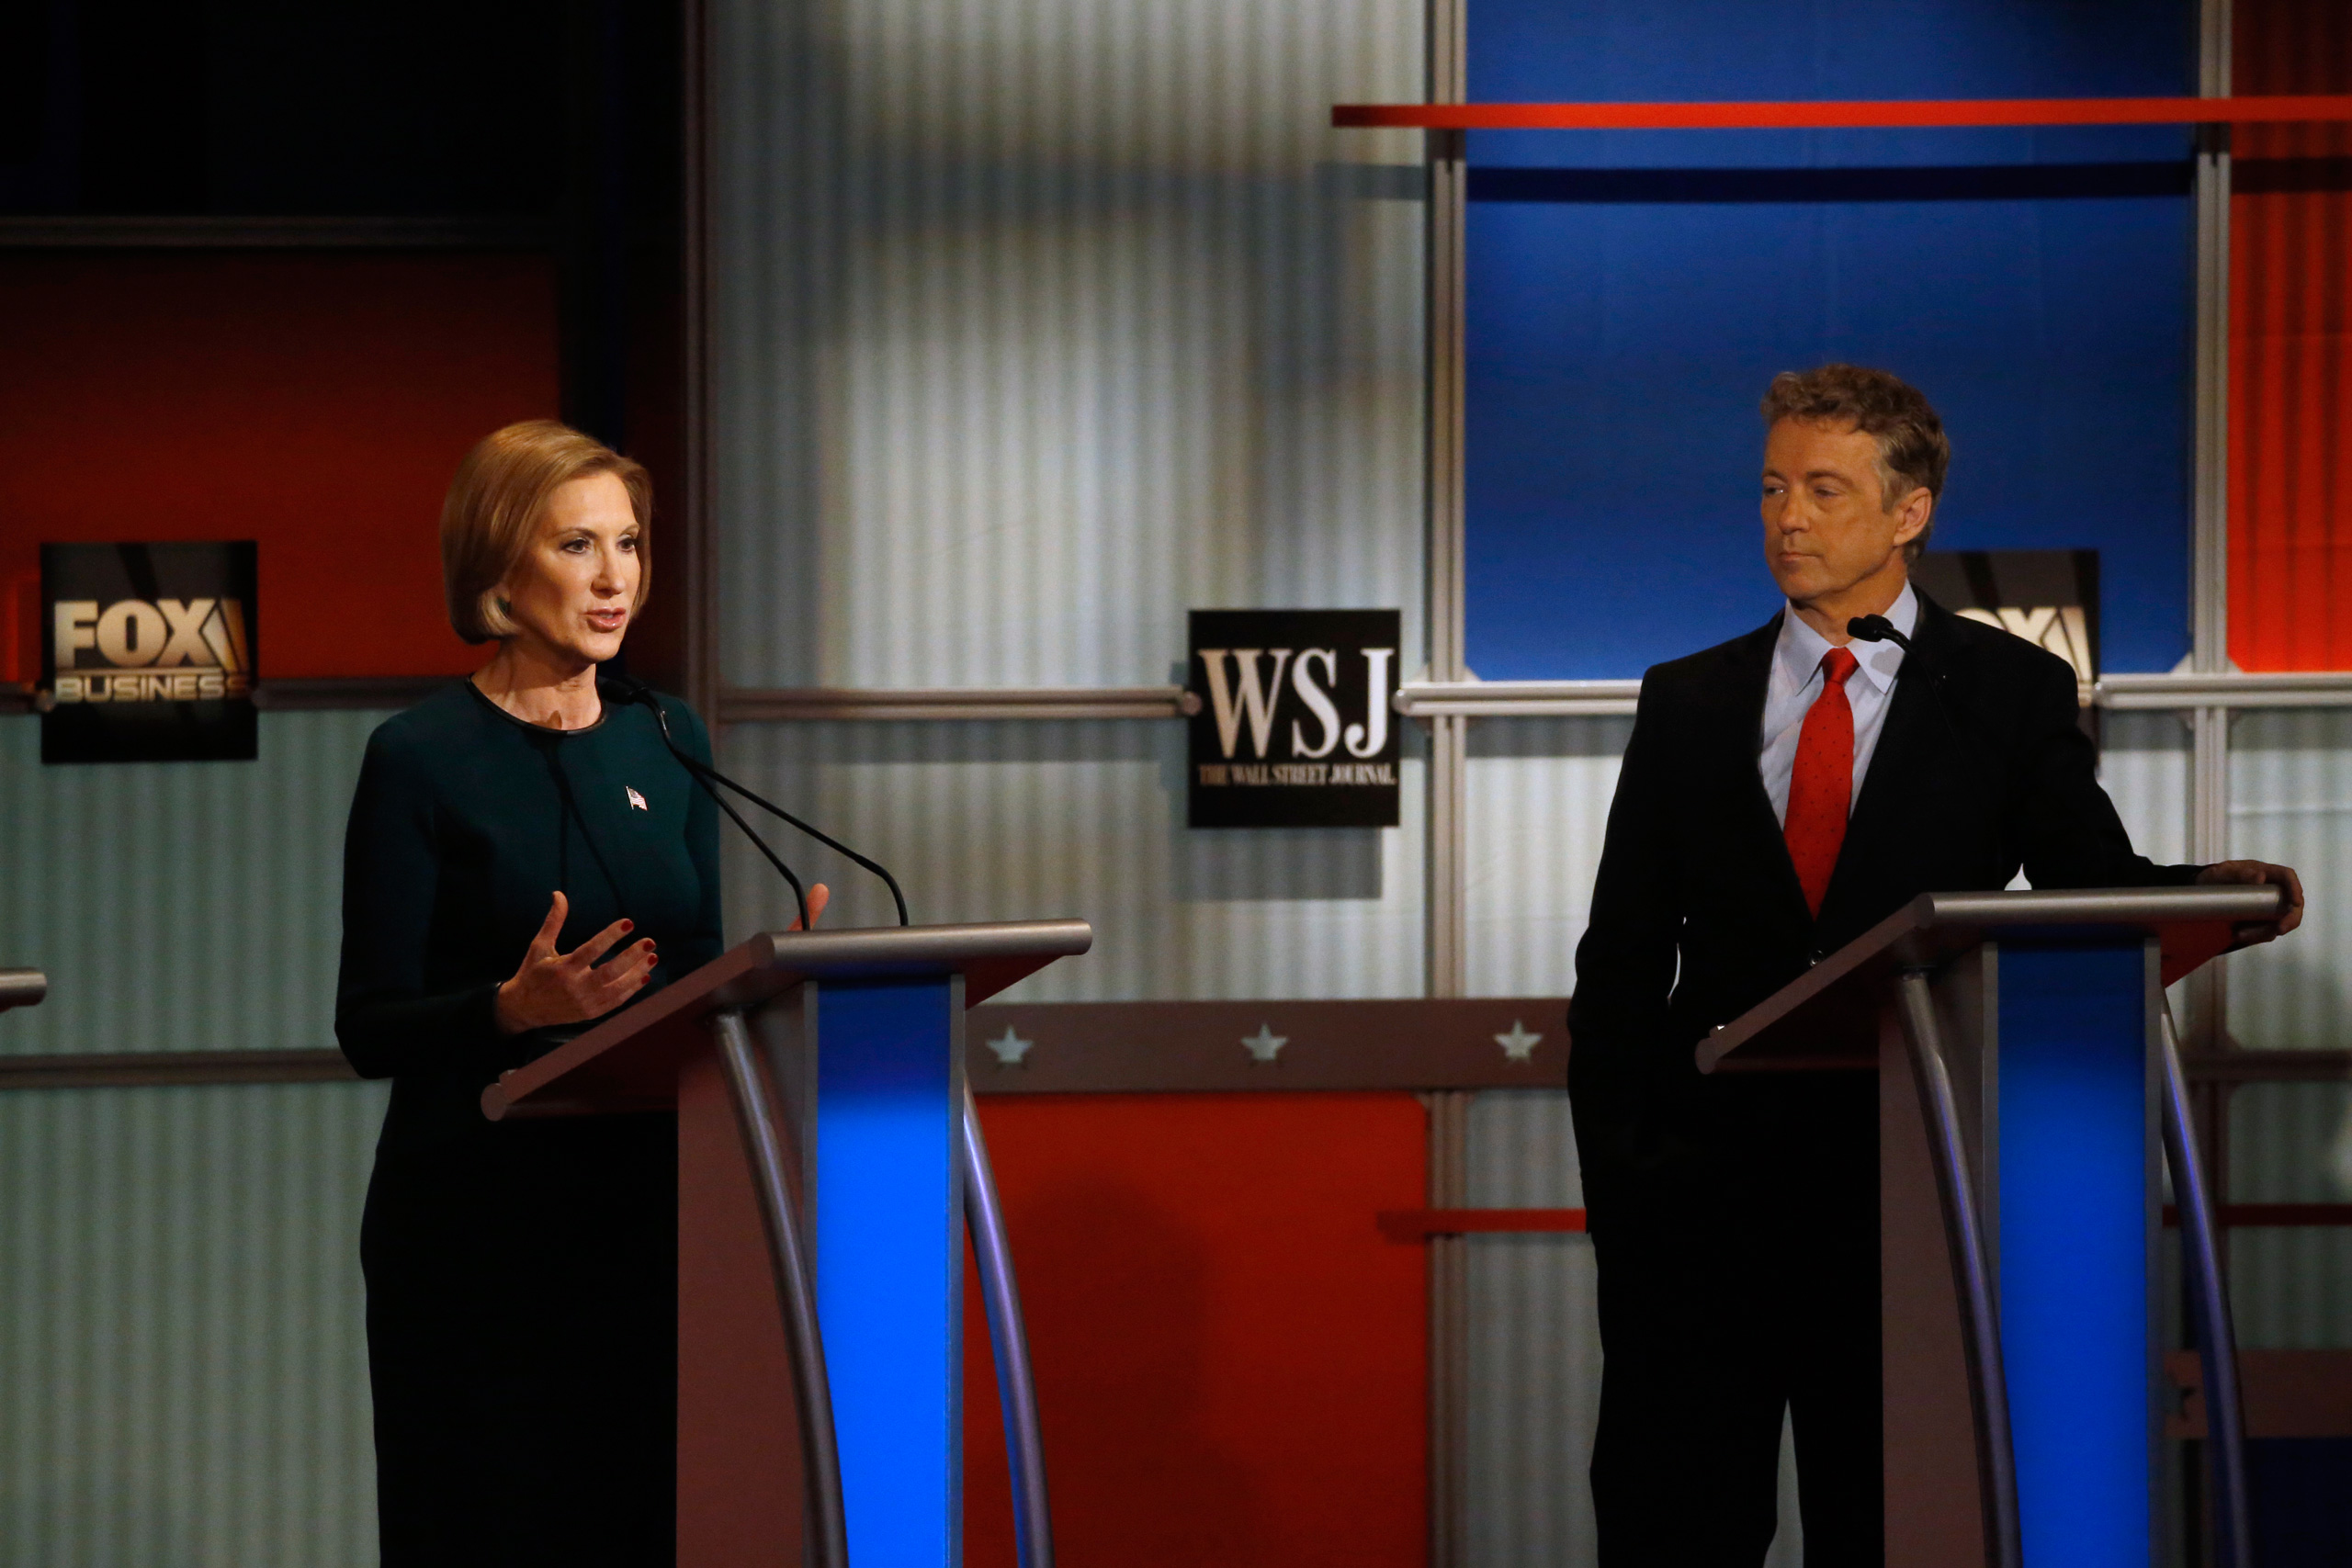 Carly Fiorina speaks as Rand Paul listens during the Republican presidential debate at the Milwaukee Theatre in Milwaukee on Nov. 11, 2015.